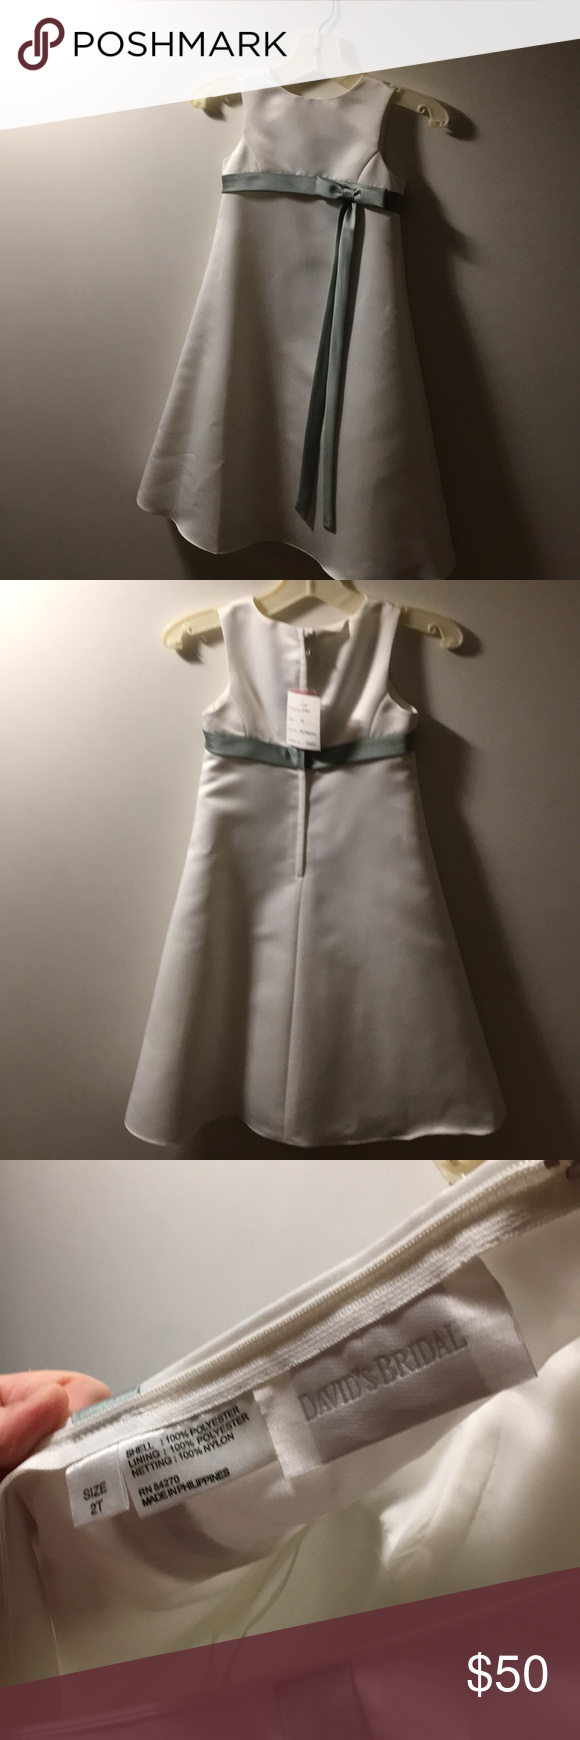 7640256a67c Holiday Flower Girl Dress NWT David s Bridal size 2T FLOWER GIRL DRESS or  perfect for the holidays. Colored Ivory Peridot runs a little big in my  opinion.